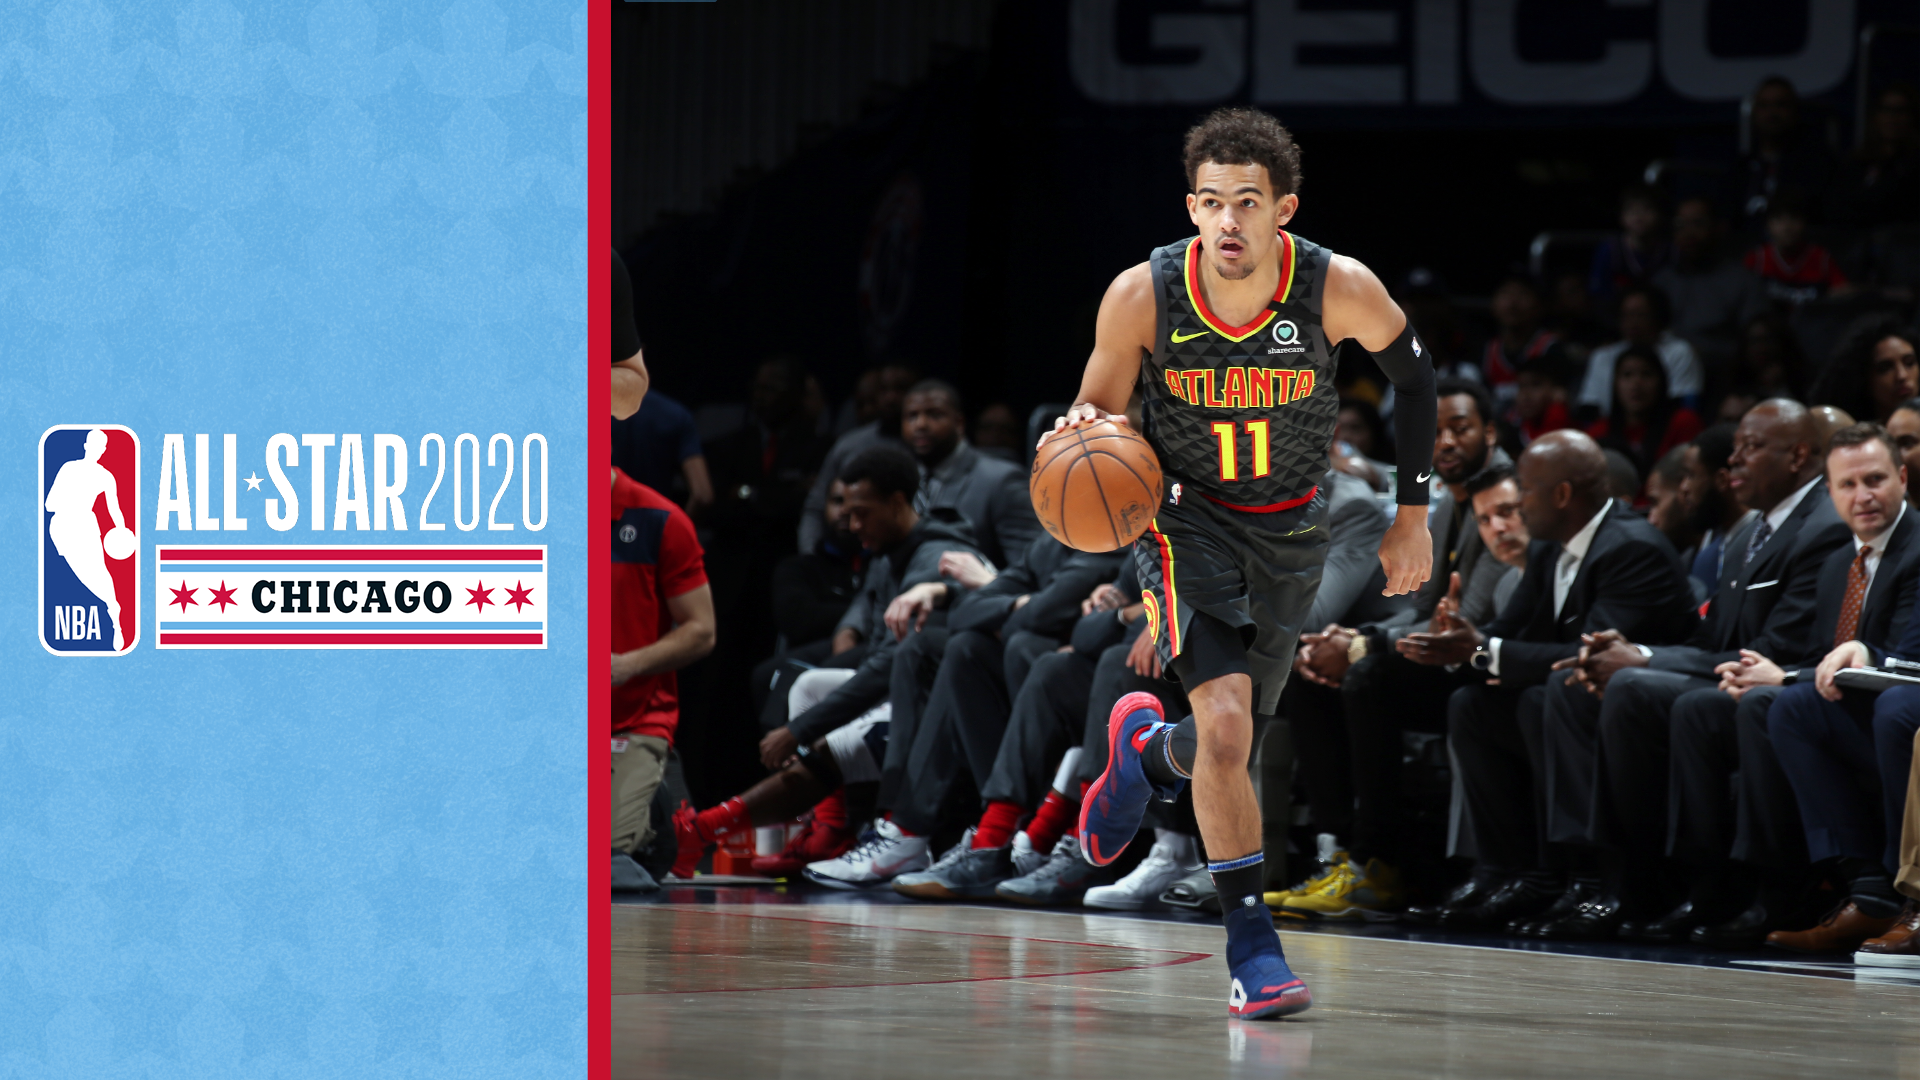 Nba All Star Game 2020 Debating Trae Young Devin Booker